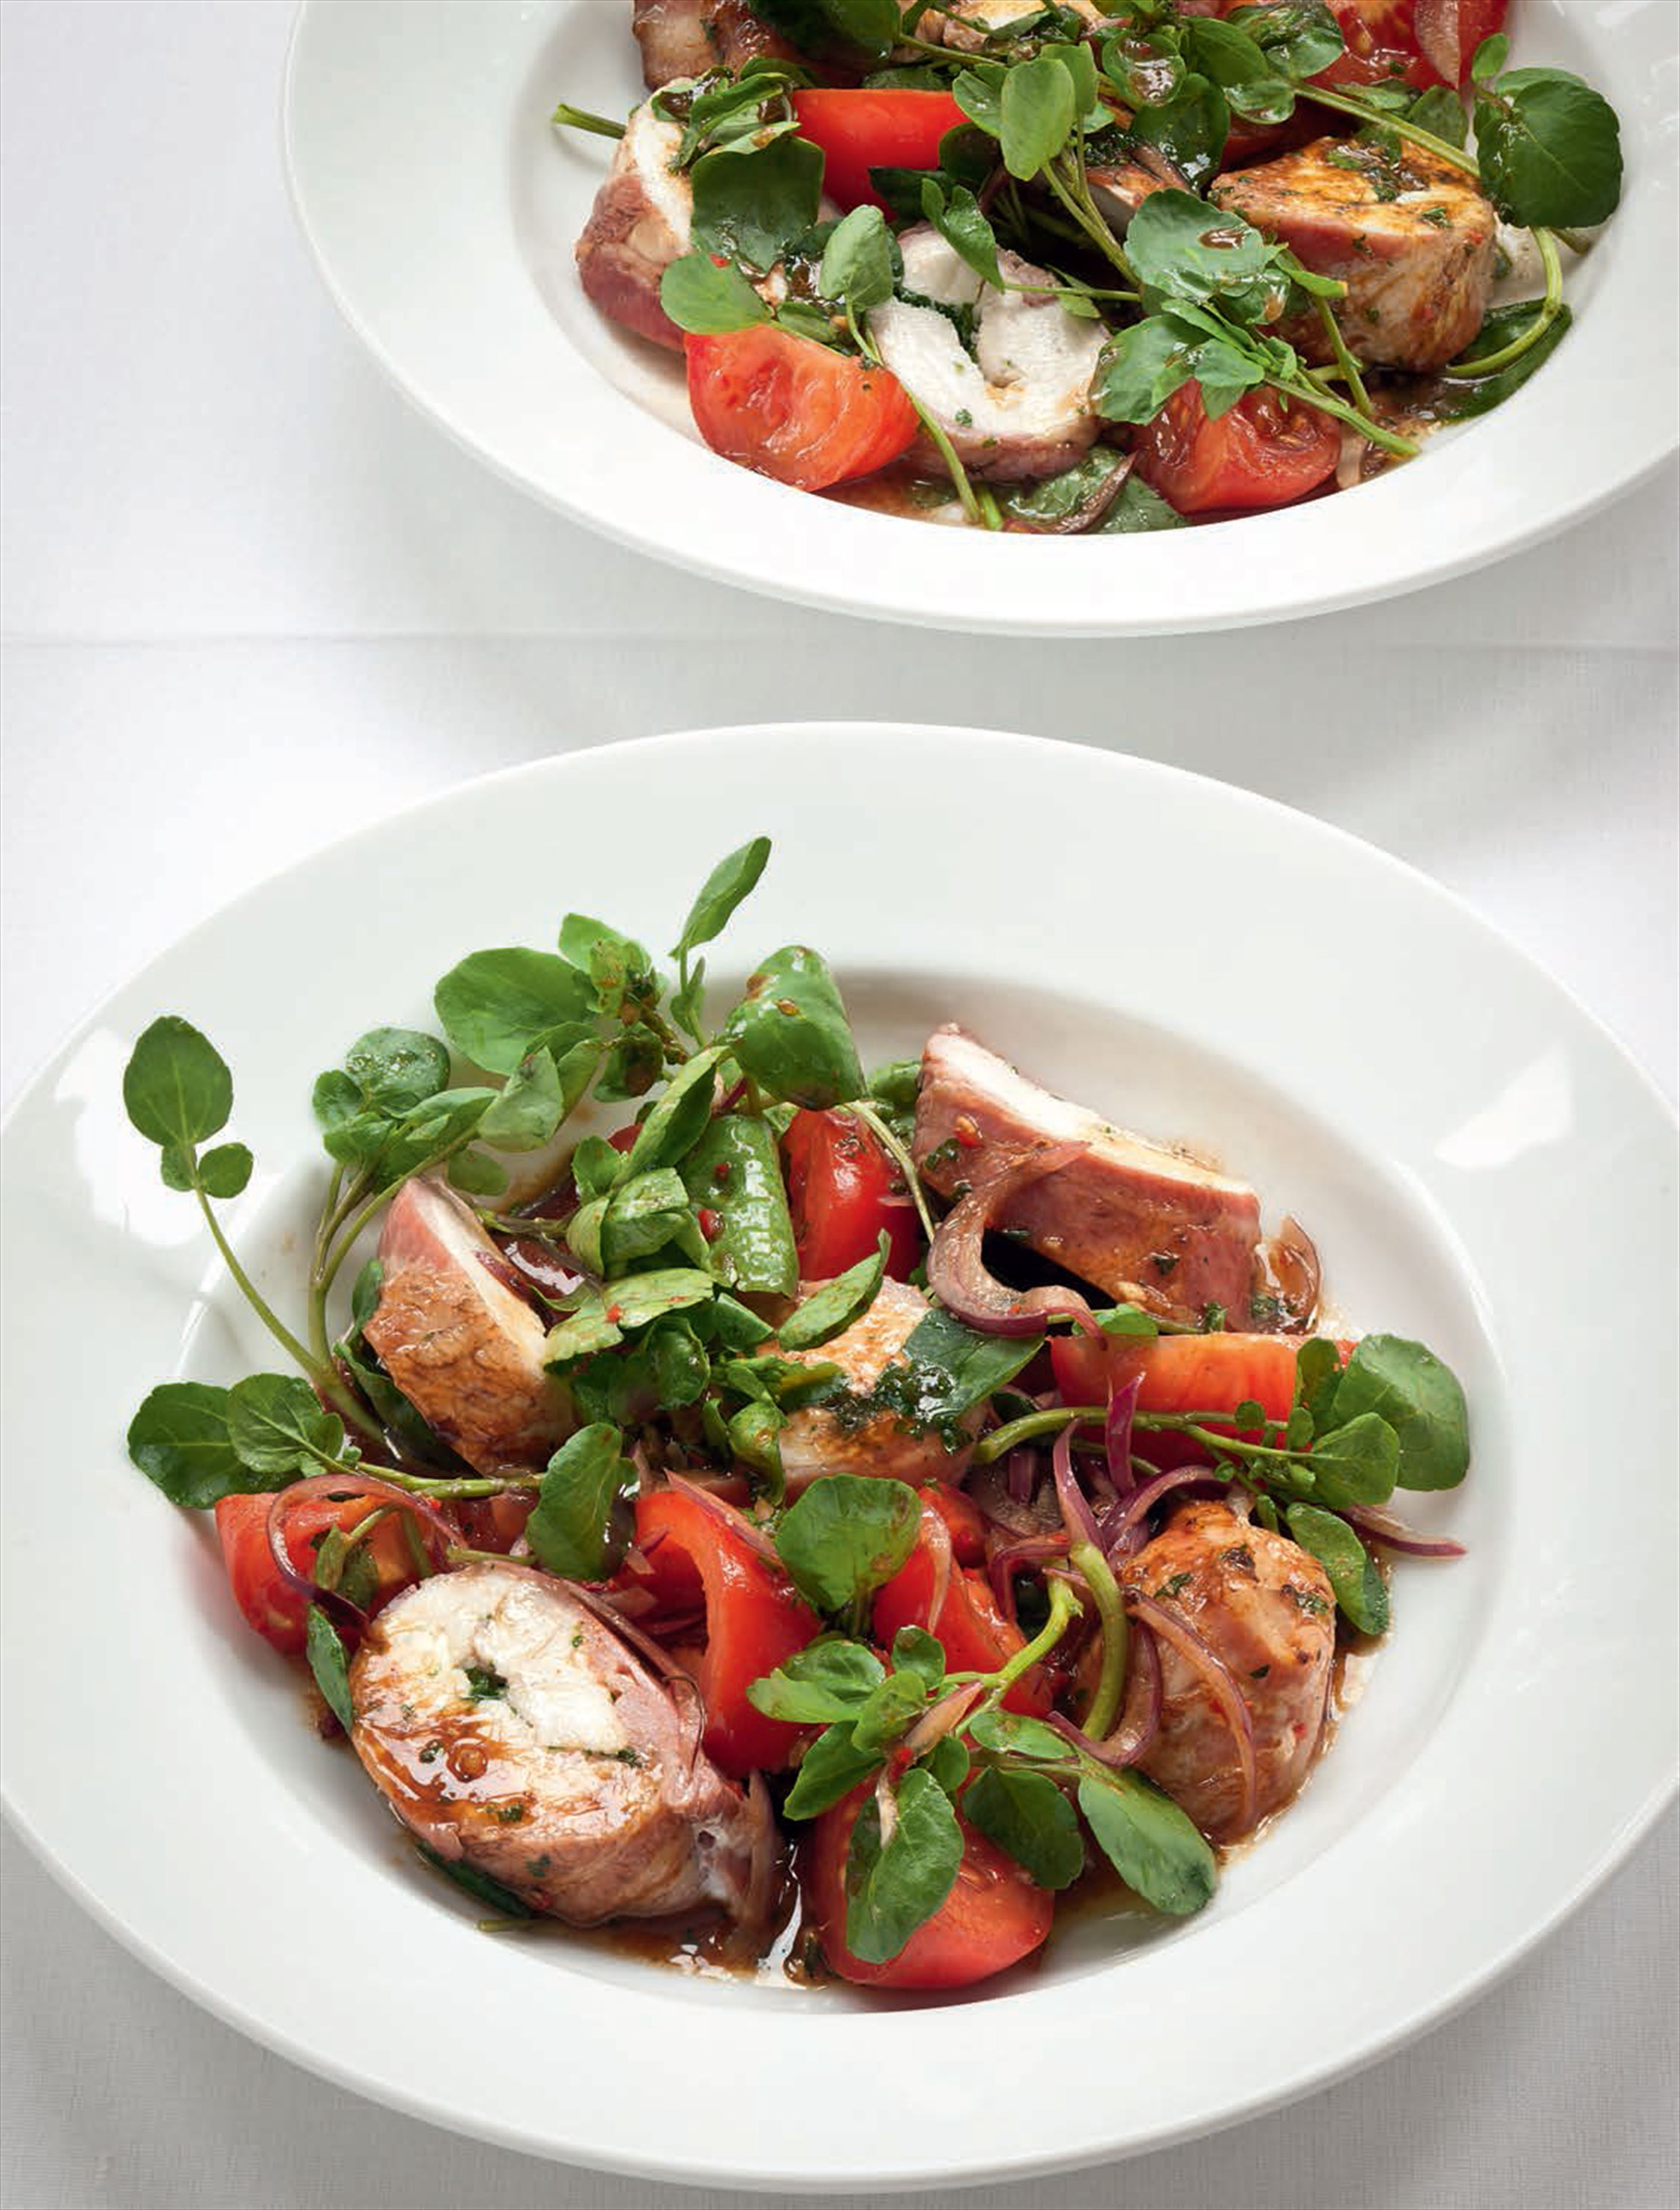 Chicken, bacon, tomato & watercress salad